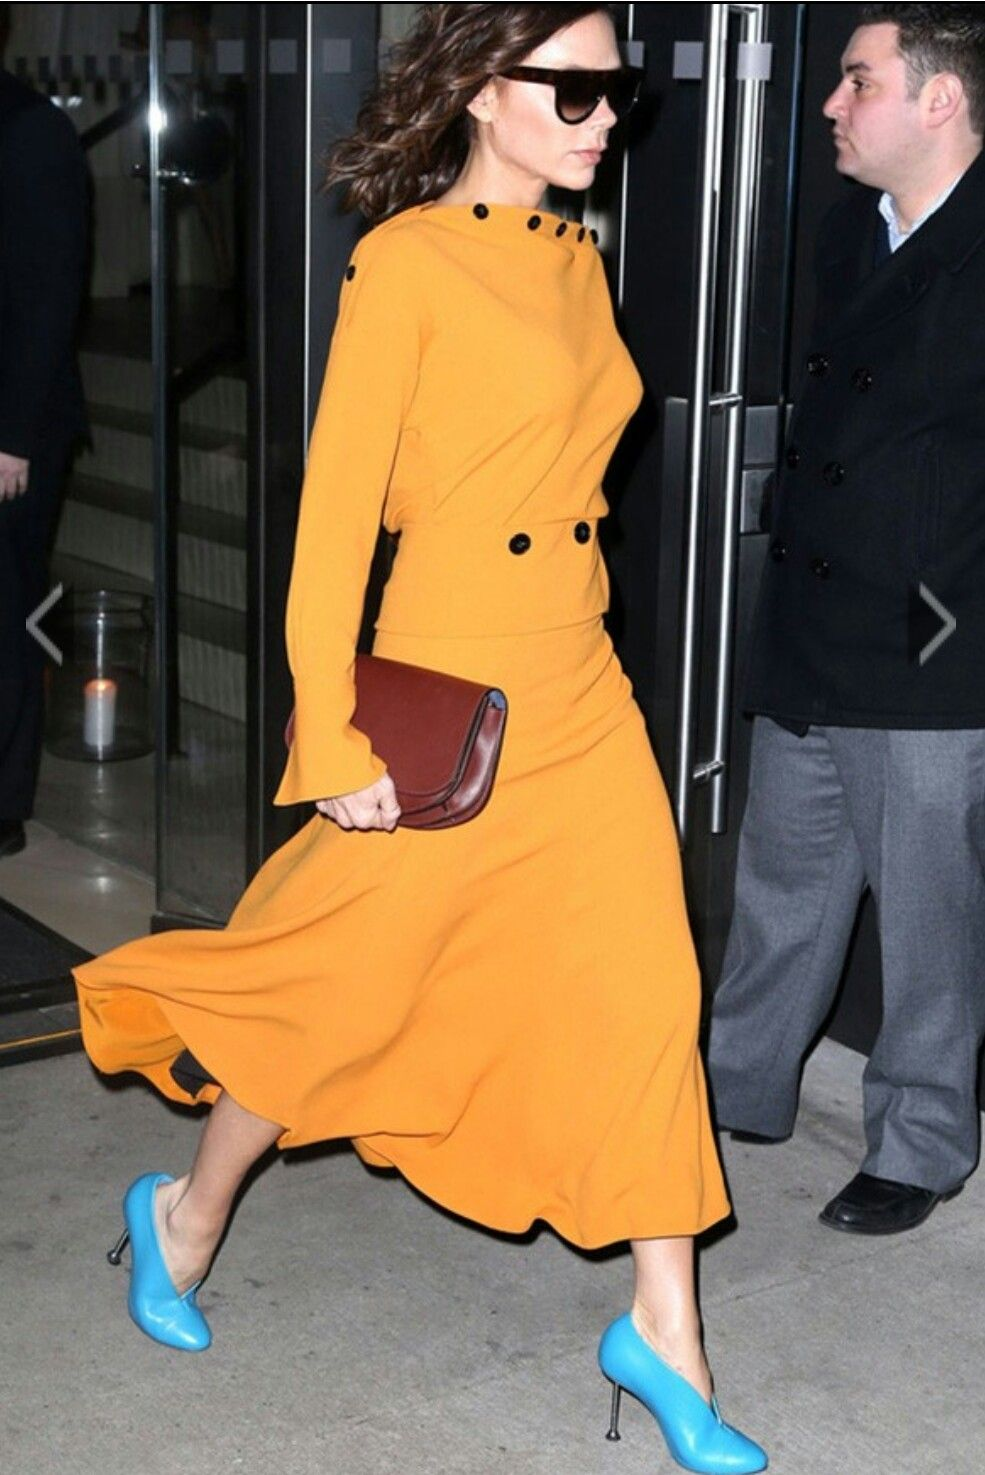 Yellow Dress With A Red Clutch And Electric Blue Shoes Victoria Beckham Outfits Victoria Beckham Style Victoria Fashion [ 1475 x 985 Pixel ]